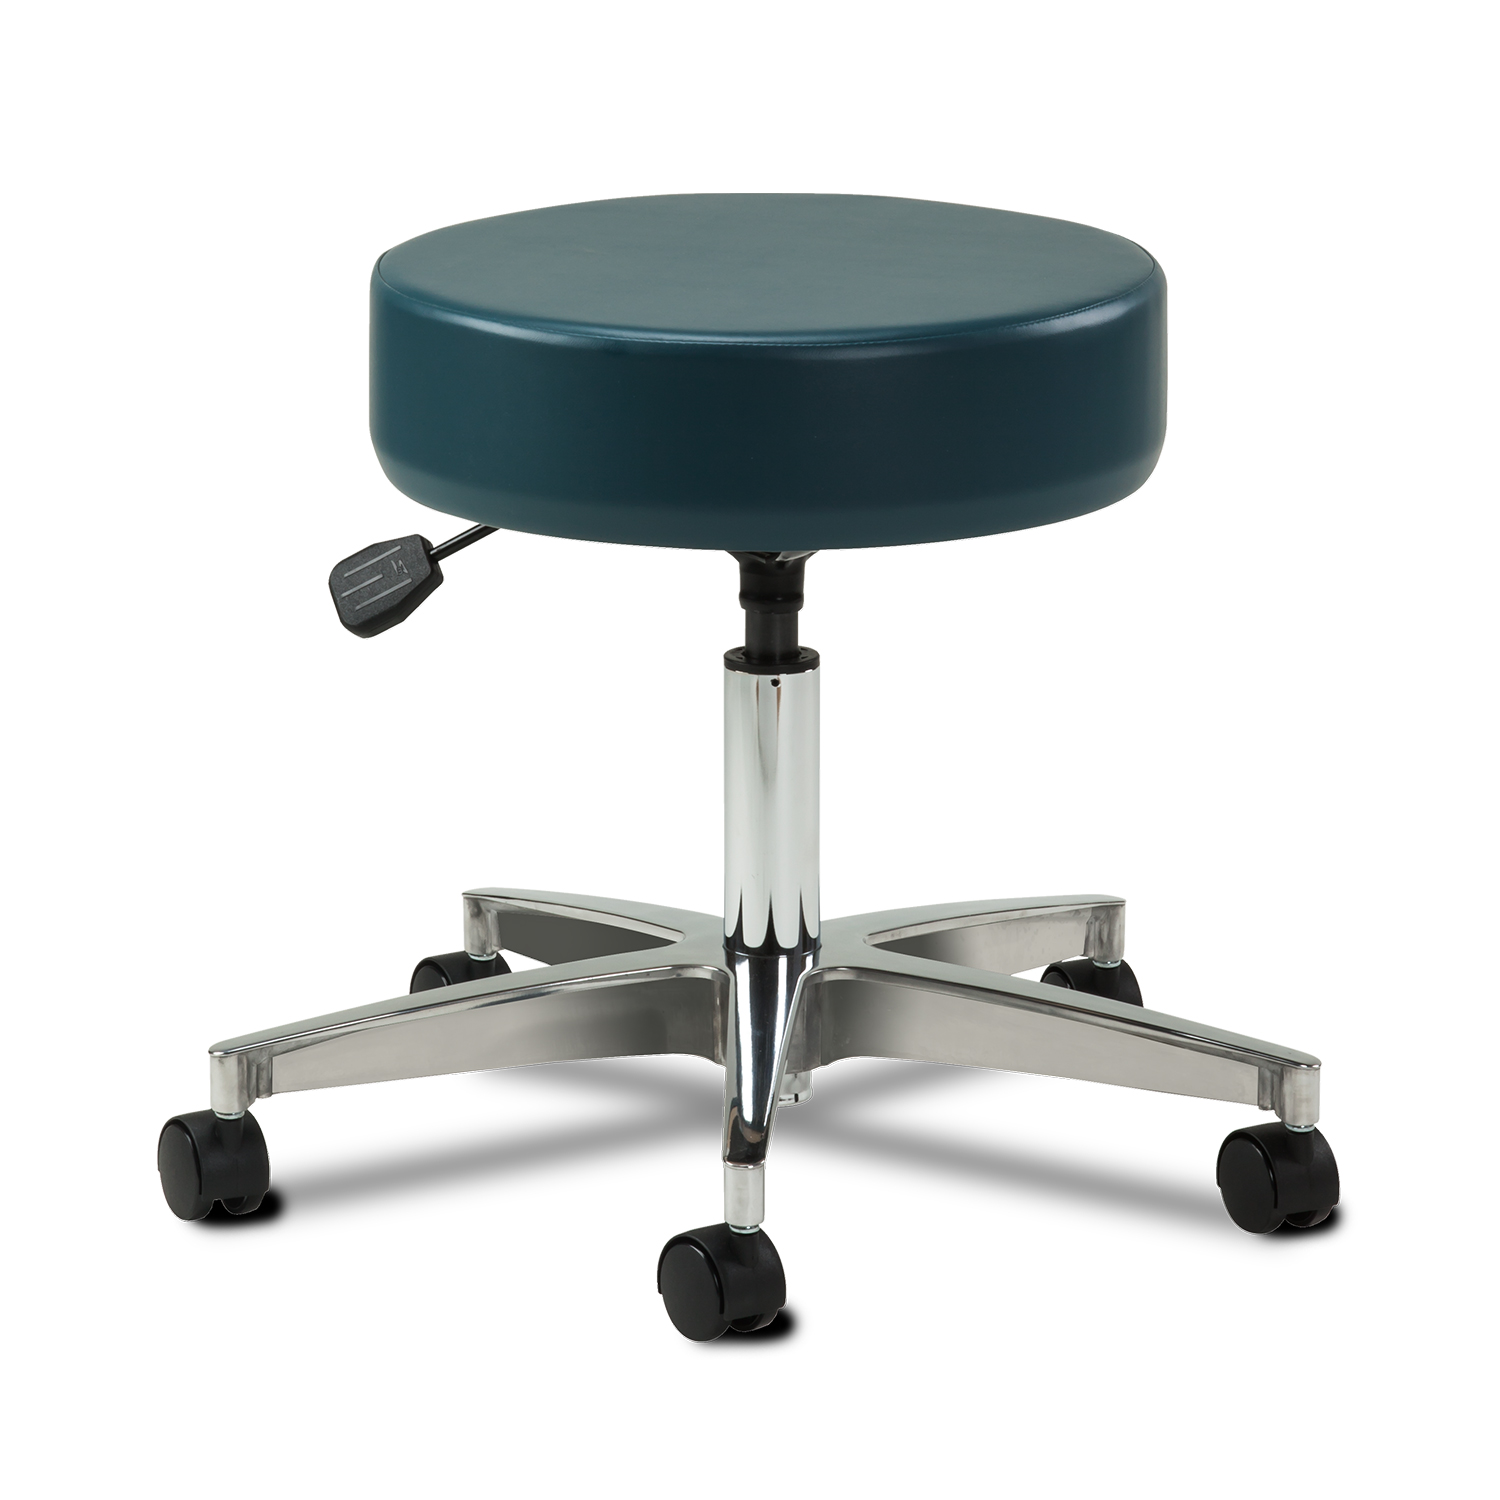 Clinton 5-Leg Aluminum Base Pneumatic Stool